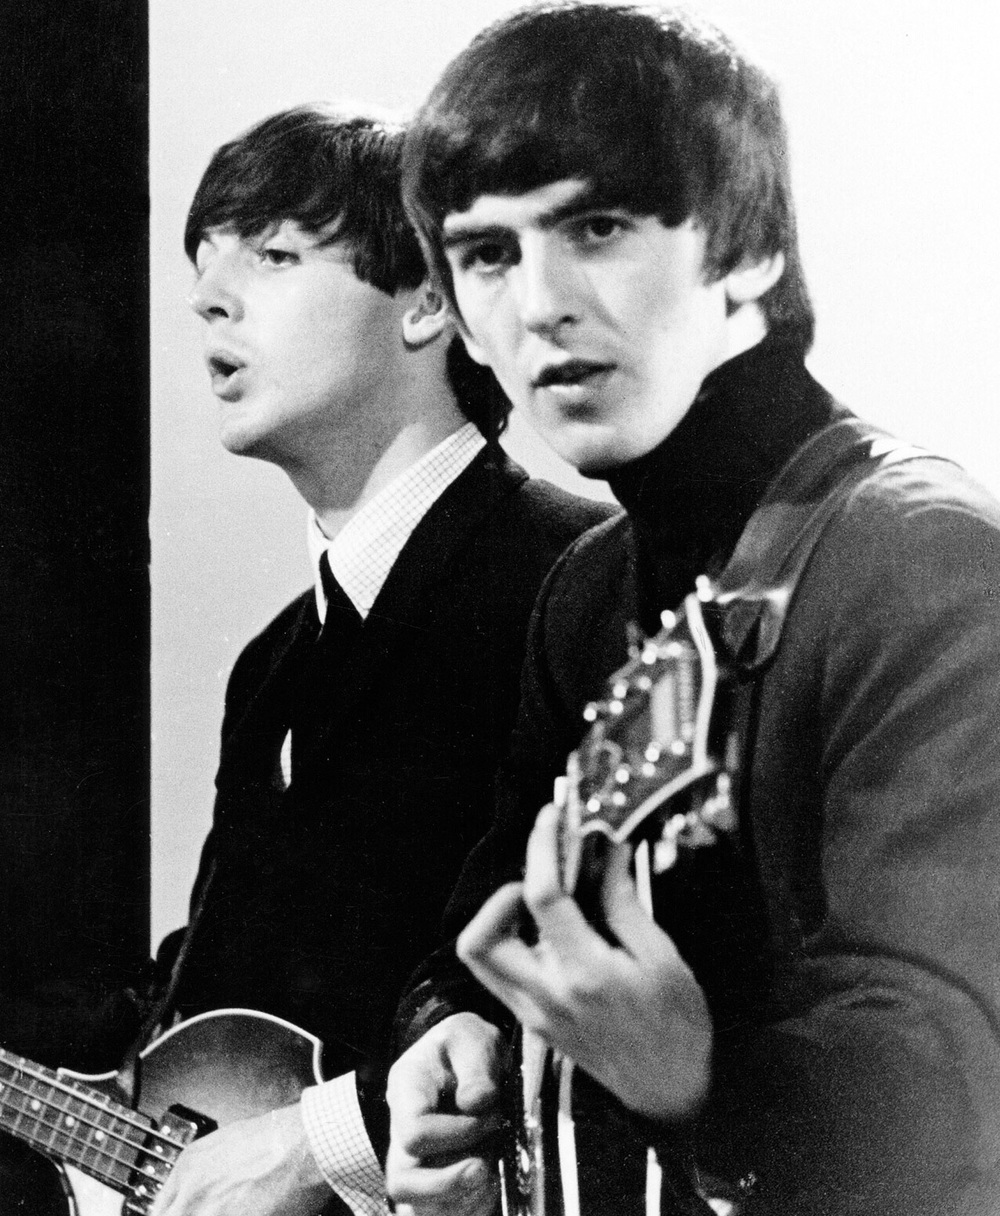 George Harrison and Paul McCartney, circa 1964.